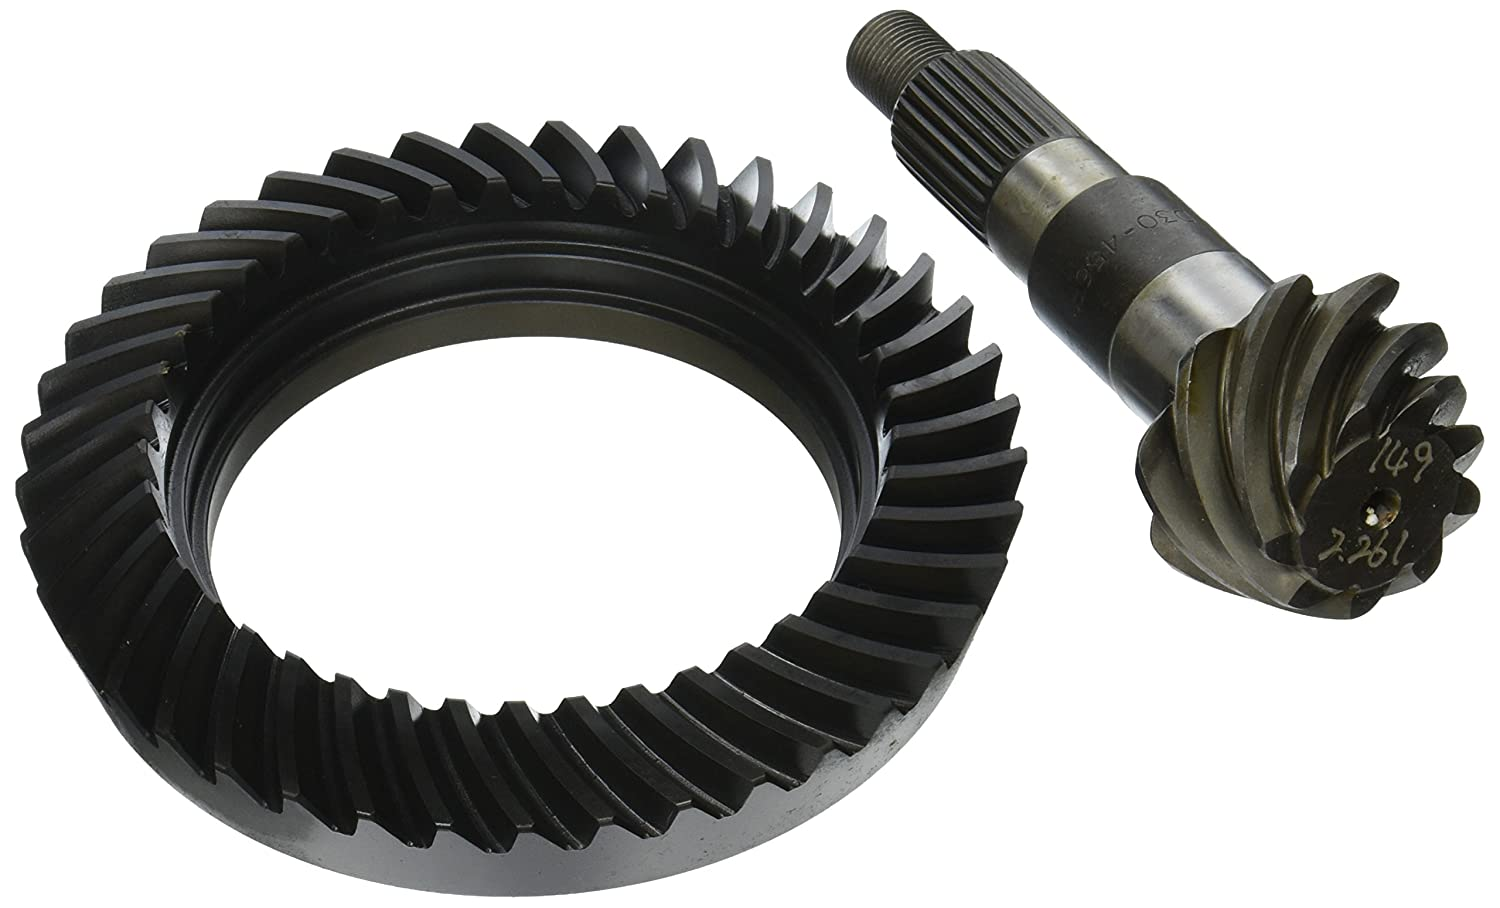 D30-410F Motive Gear 41-10 Teeth Dana 30 Reverse//High Pinion 4.1 Ratio Performance Ring and Pinion Differential Set